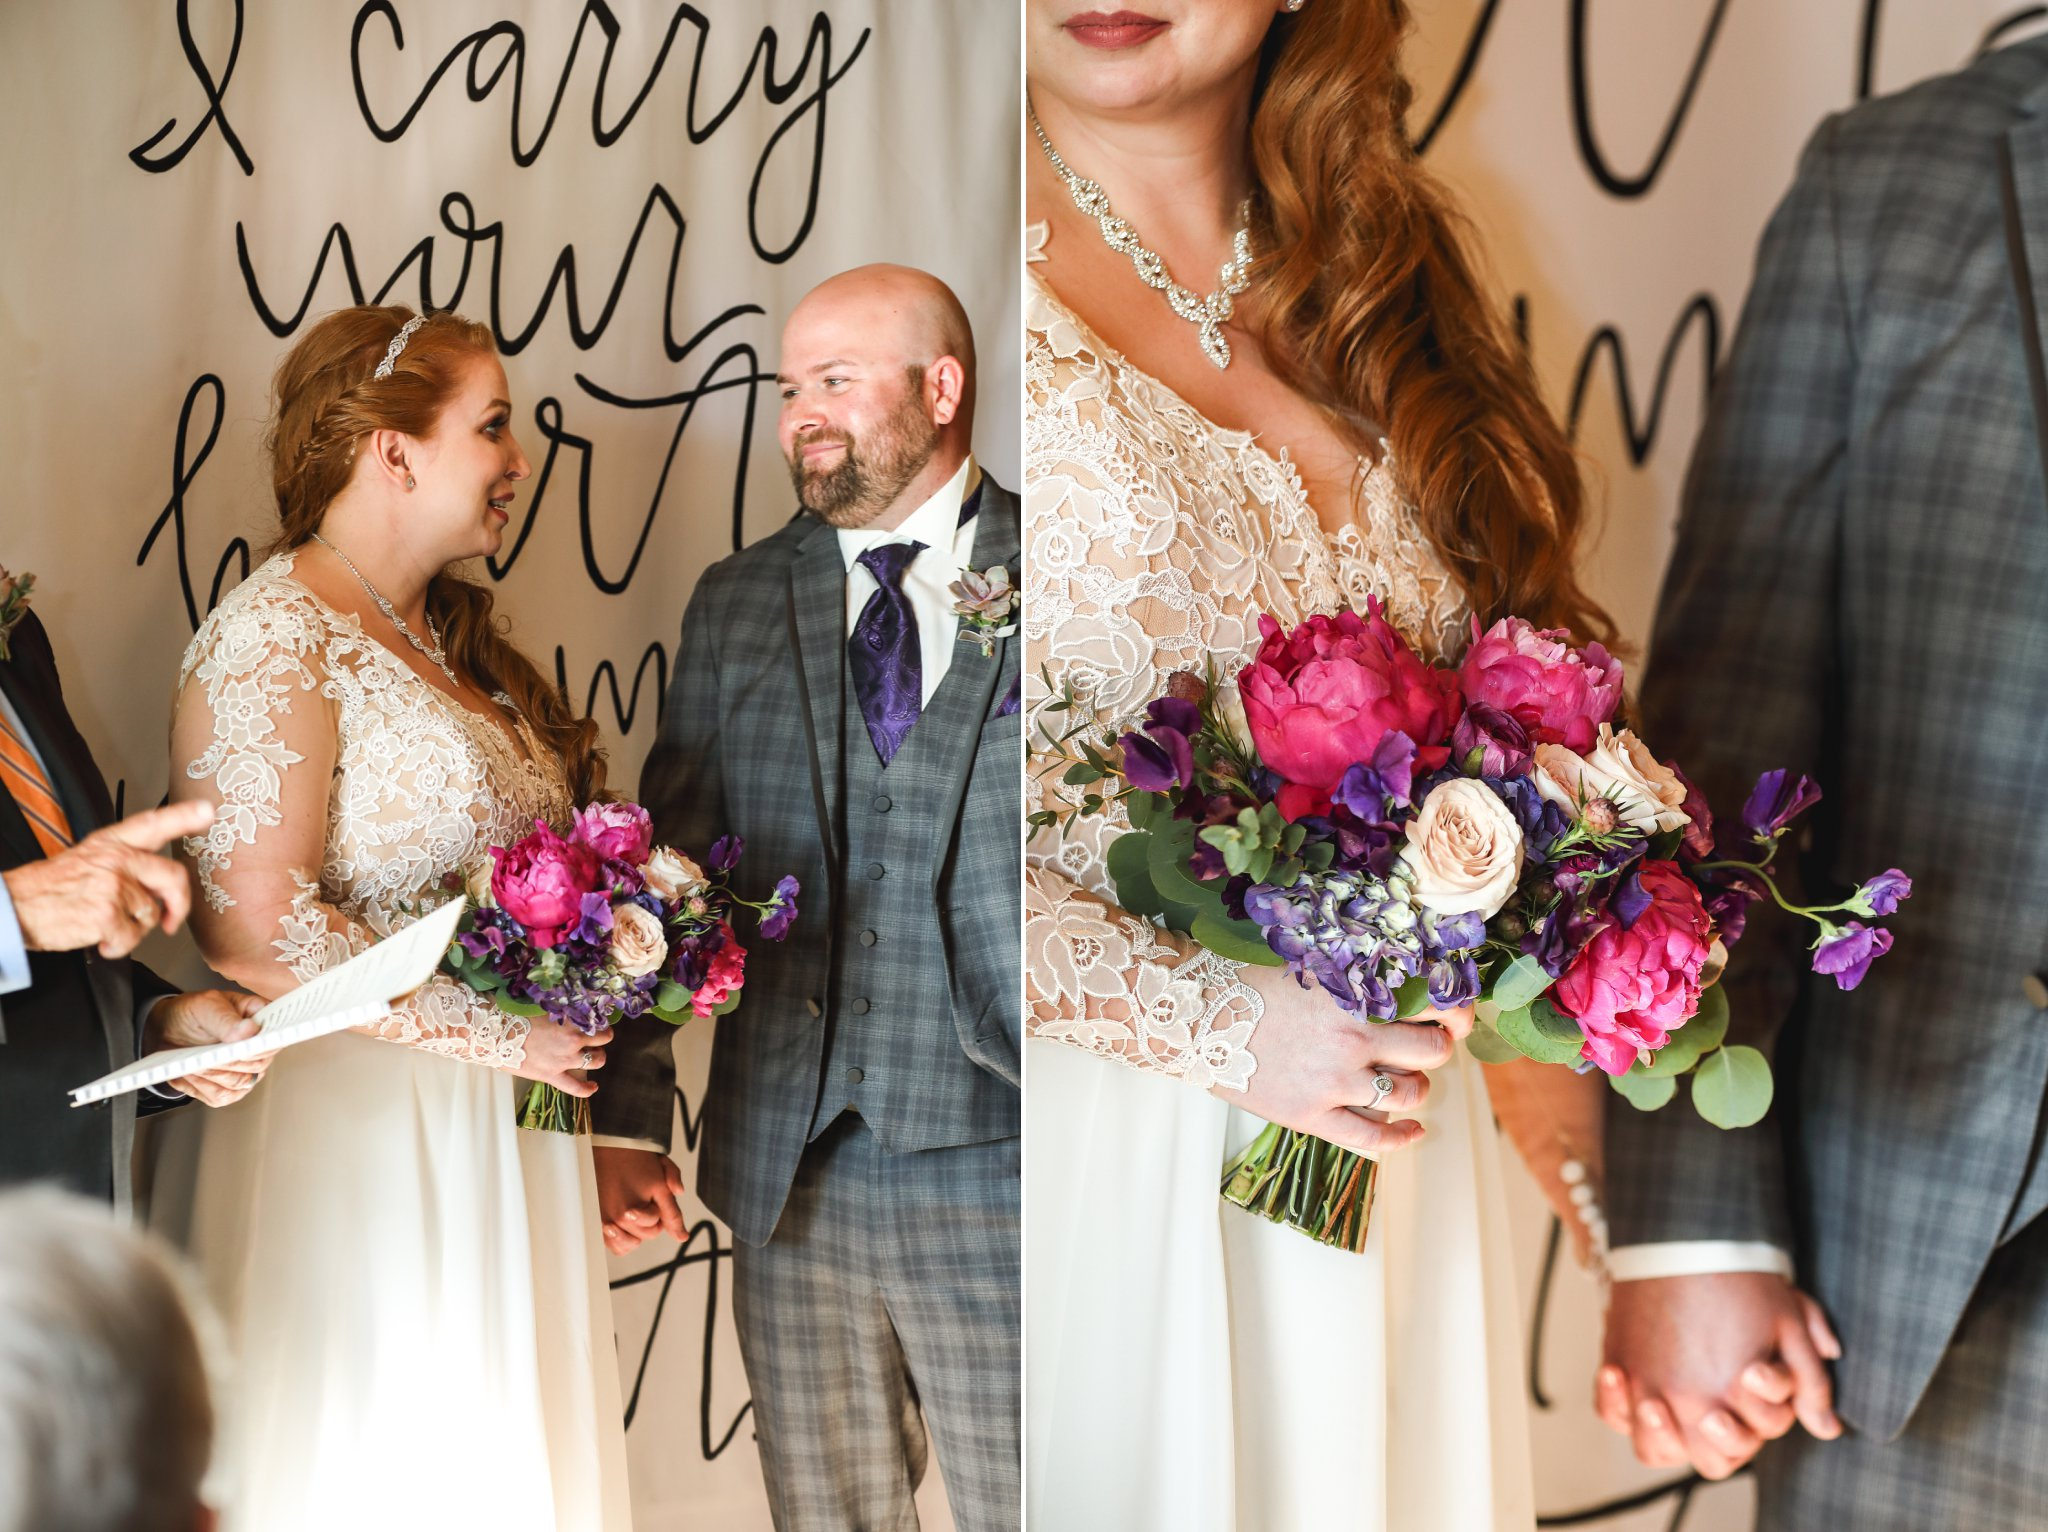 AshleyDaphnePhotography Calgary Wedding Photographer Rouge Inglewood Bride Groom Photography_0026.jpg